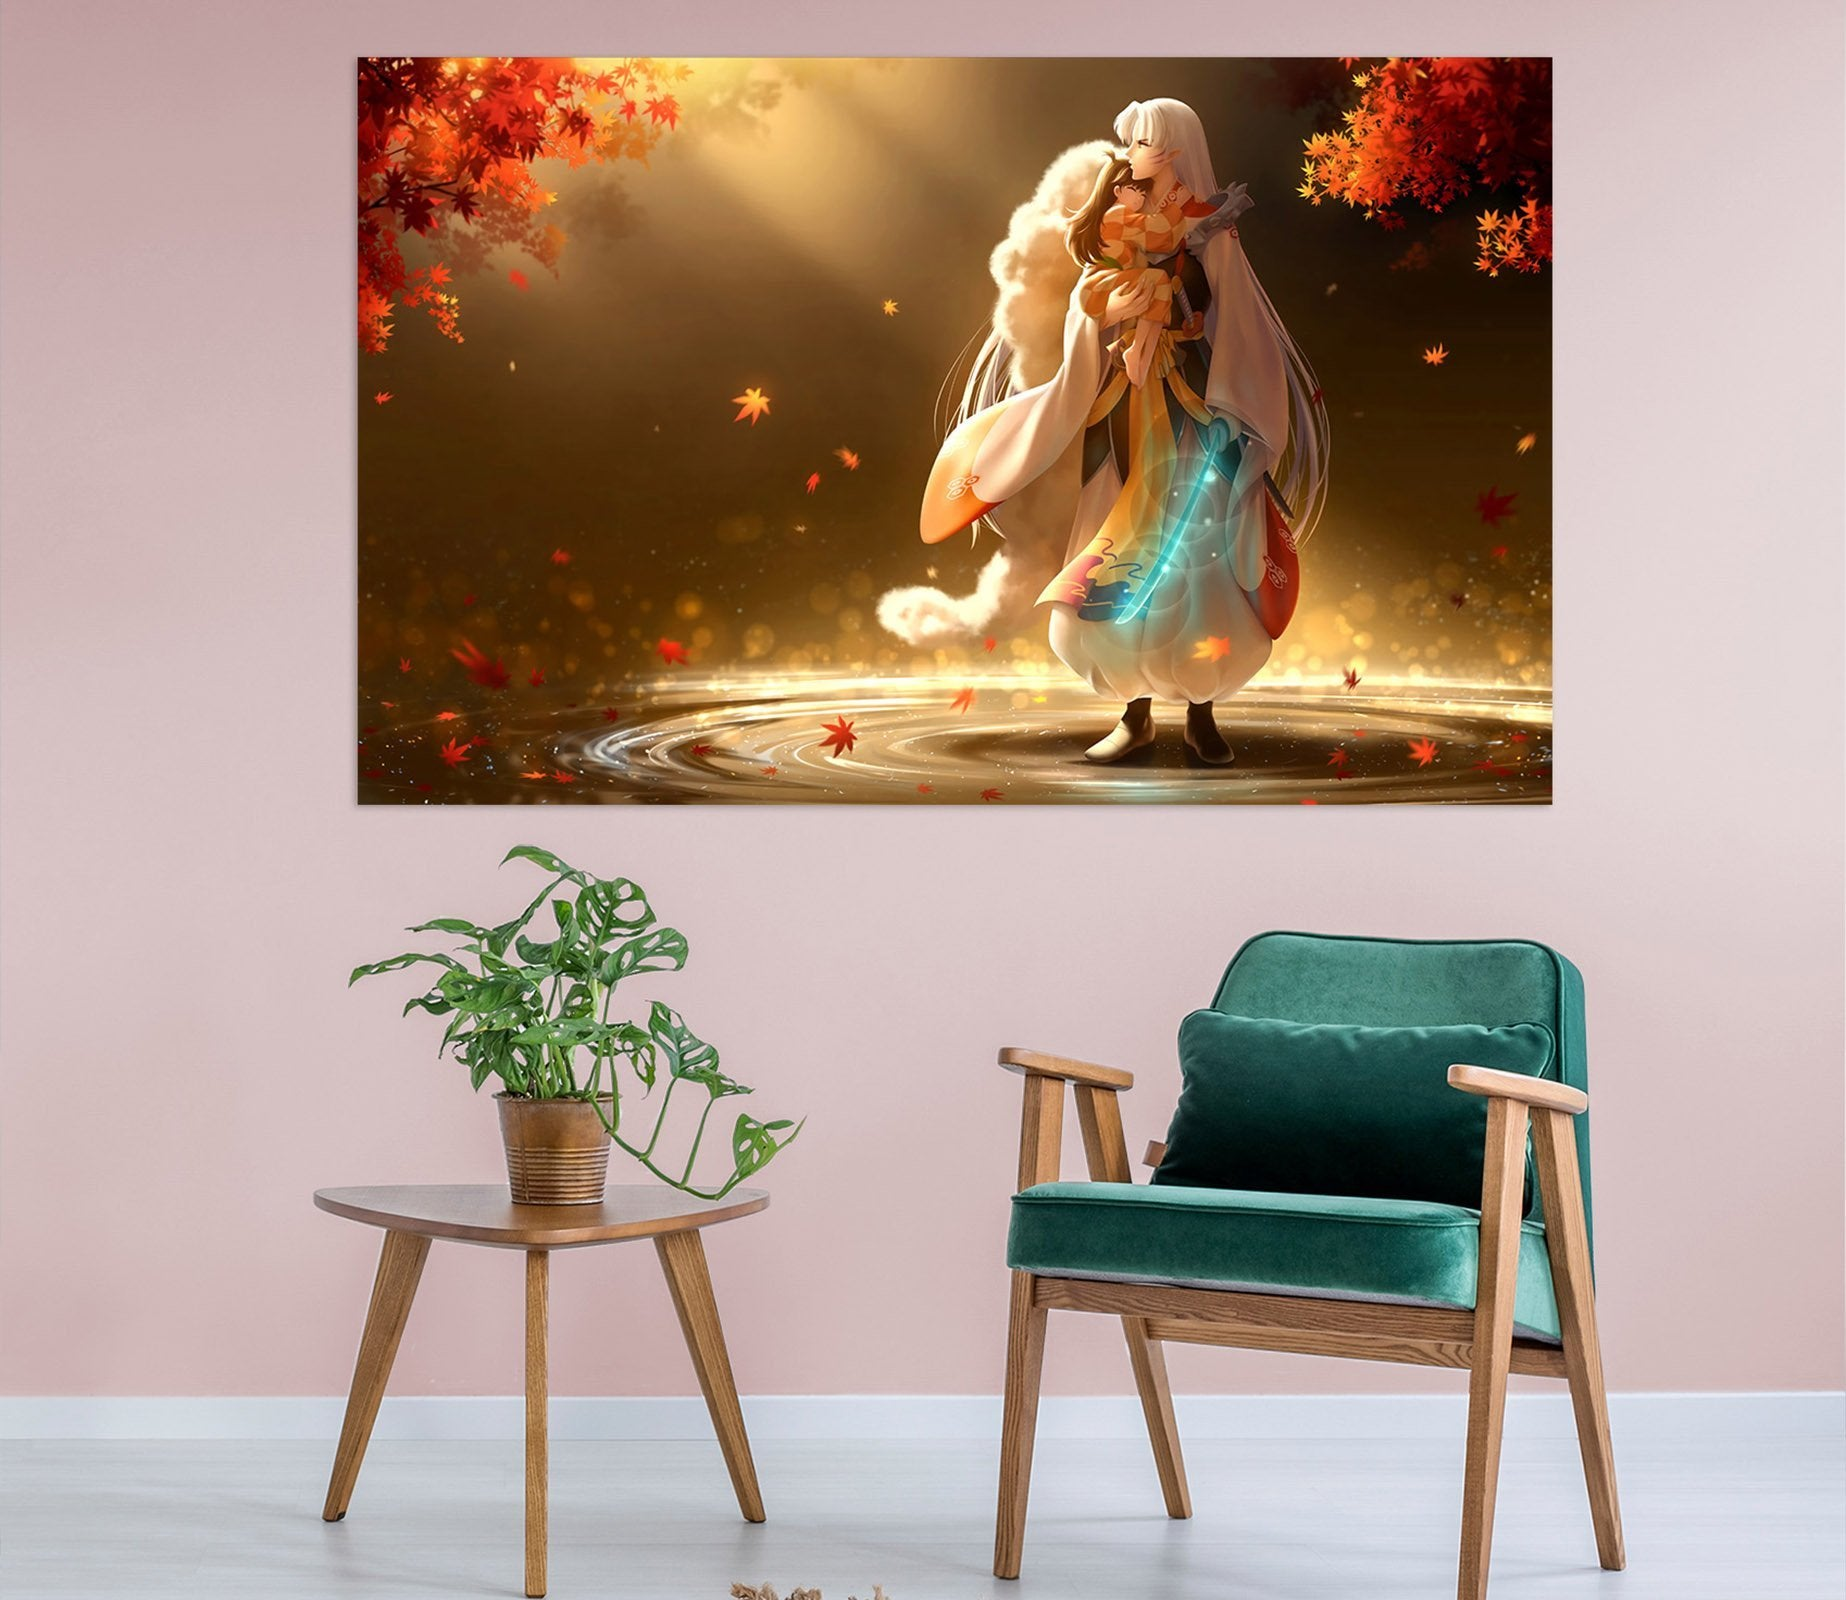 3D Inuyasha 382 Anime Wall Stickers Wallpaper AJ Wallpaper 2